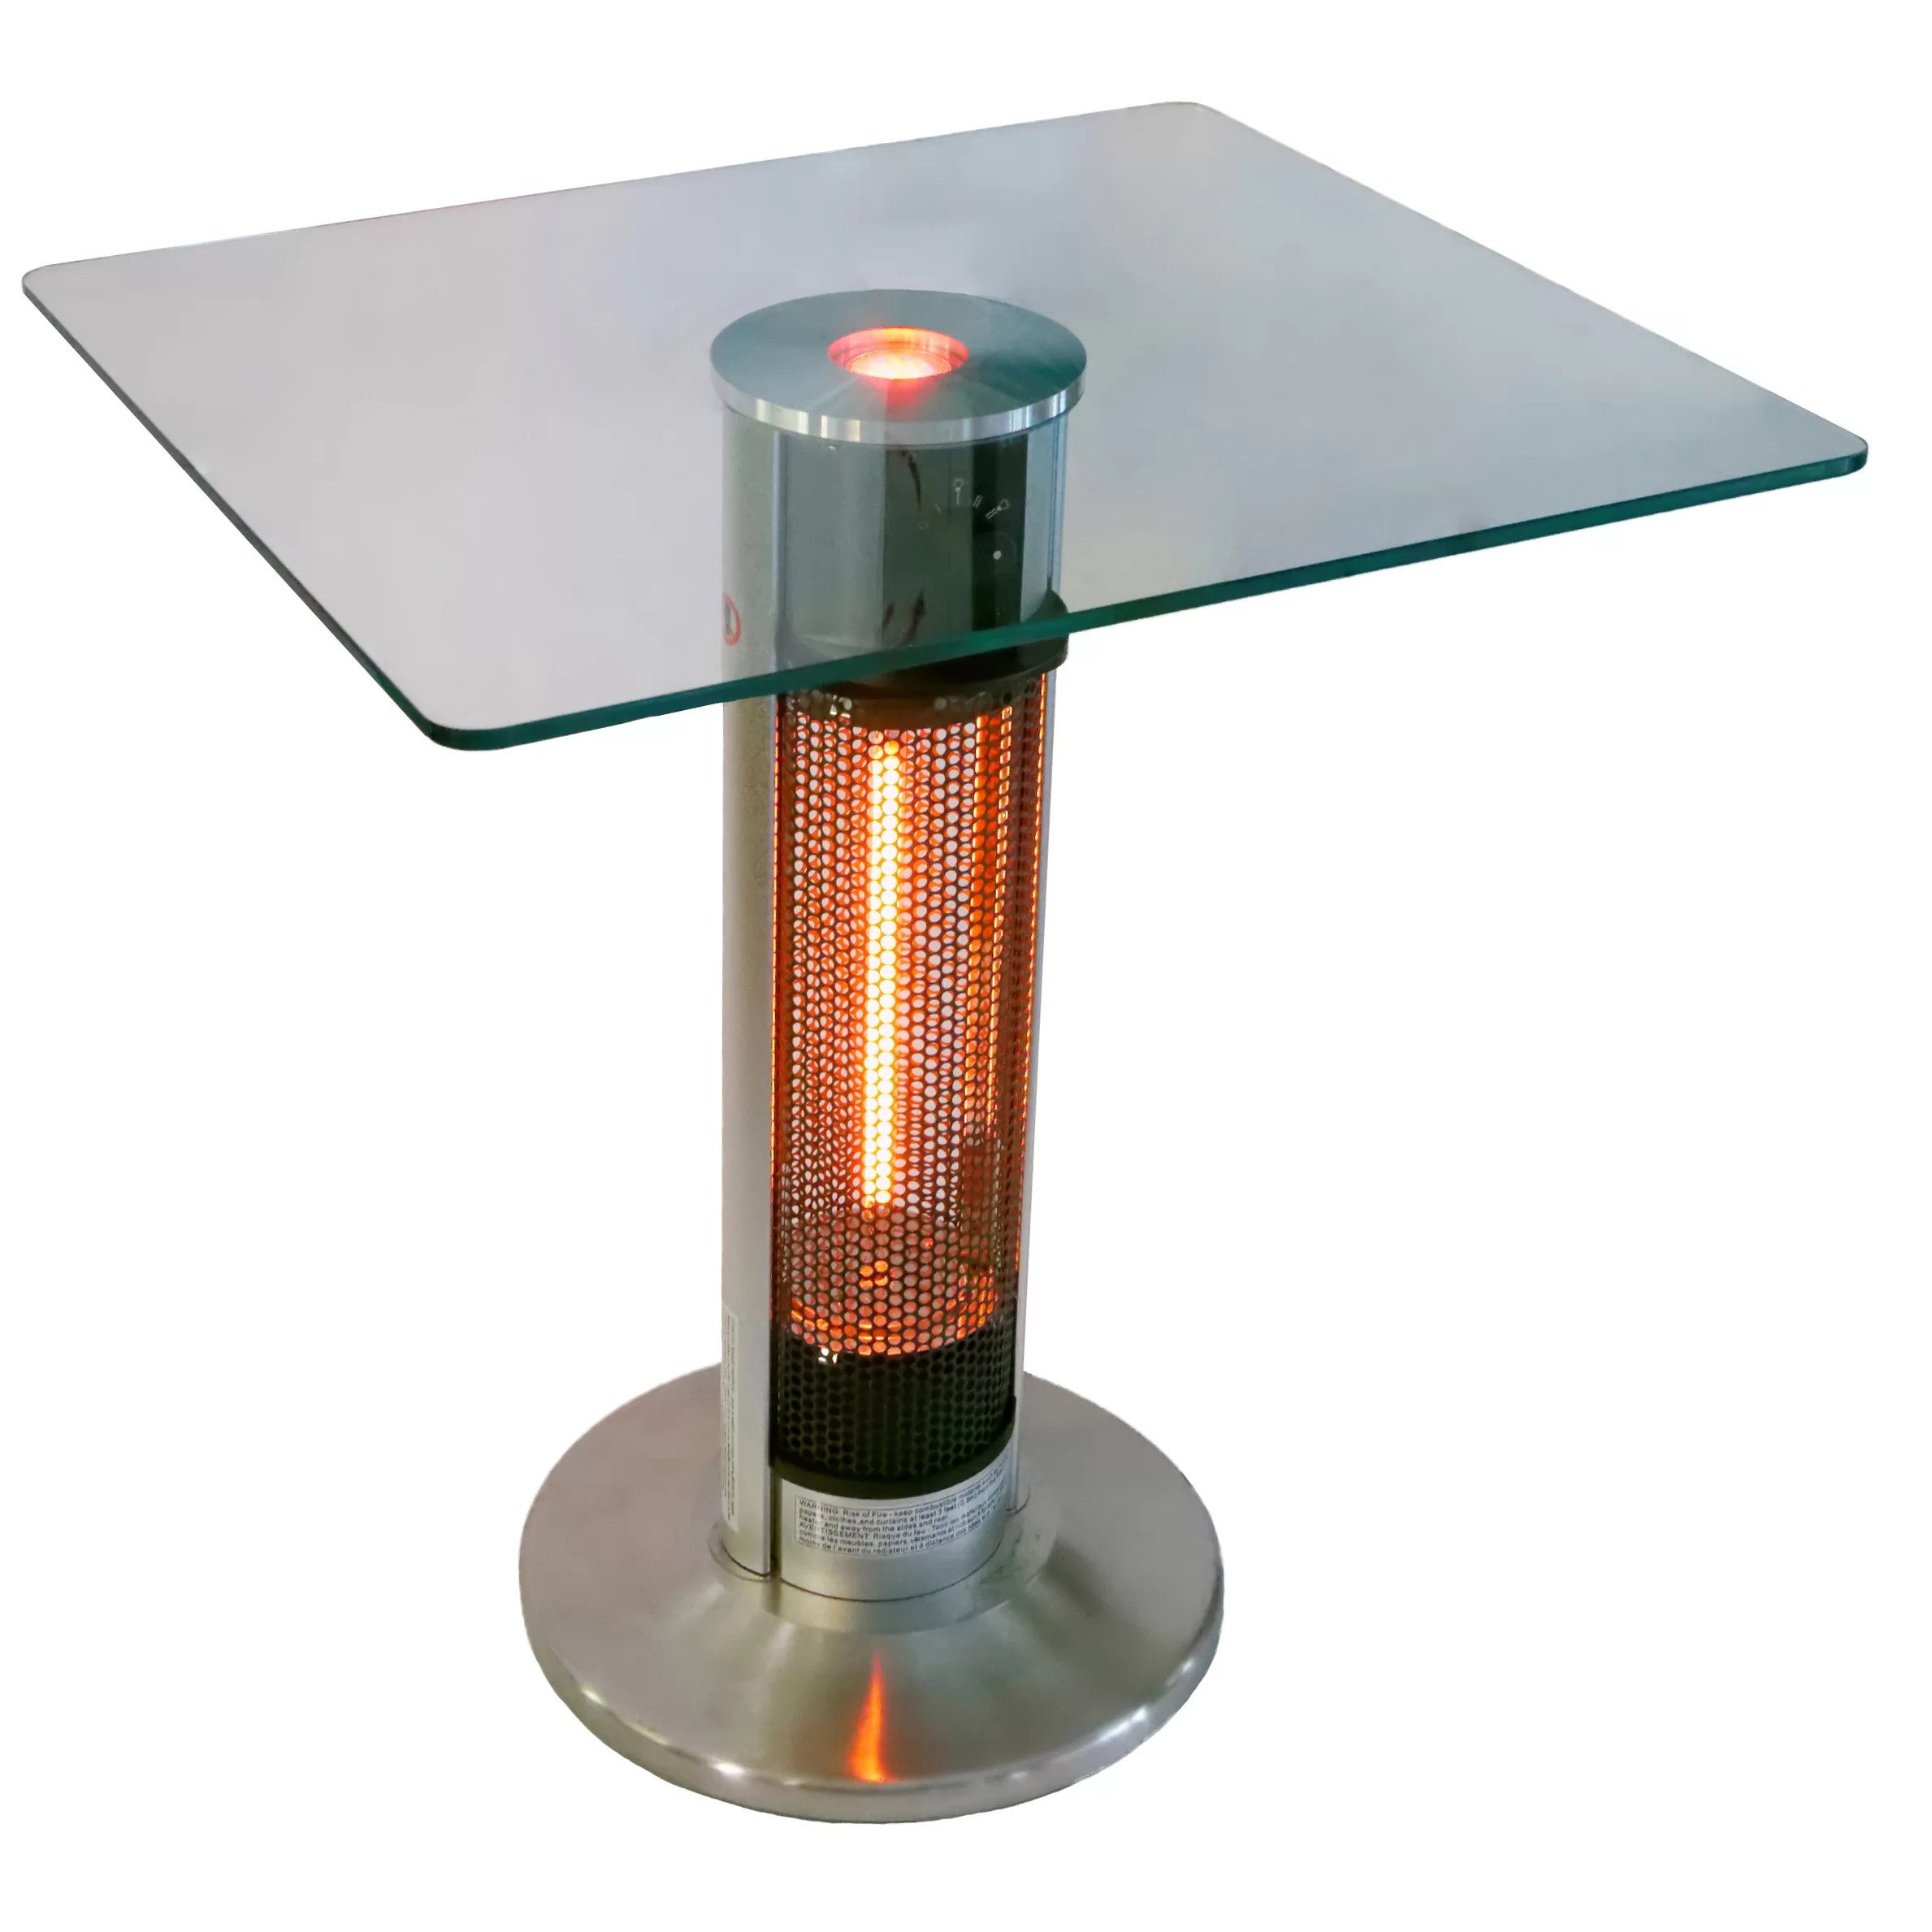 4760 Btu Portable Electric Infrared Tower Heater With Led